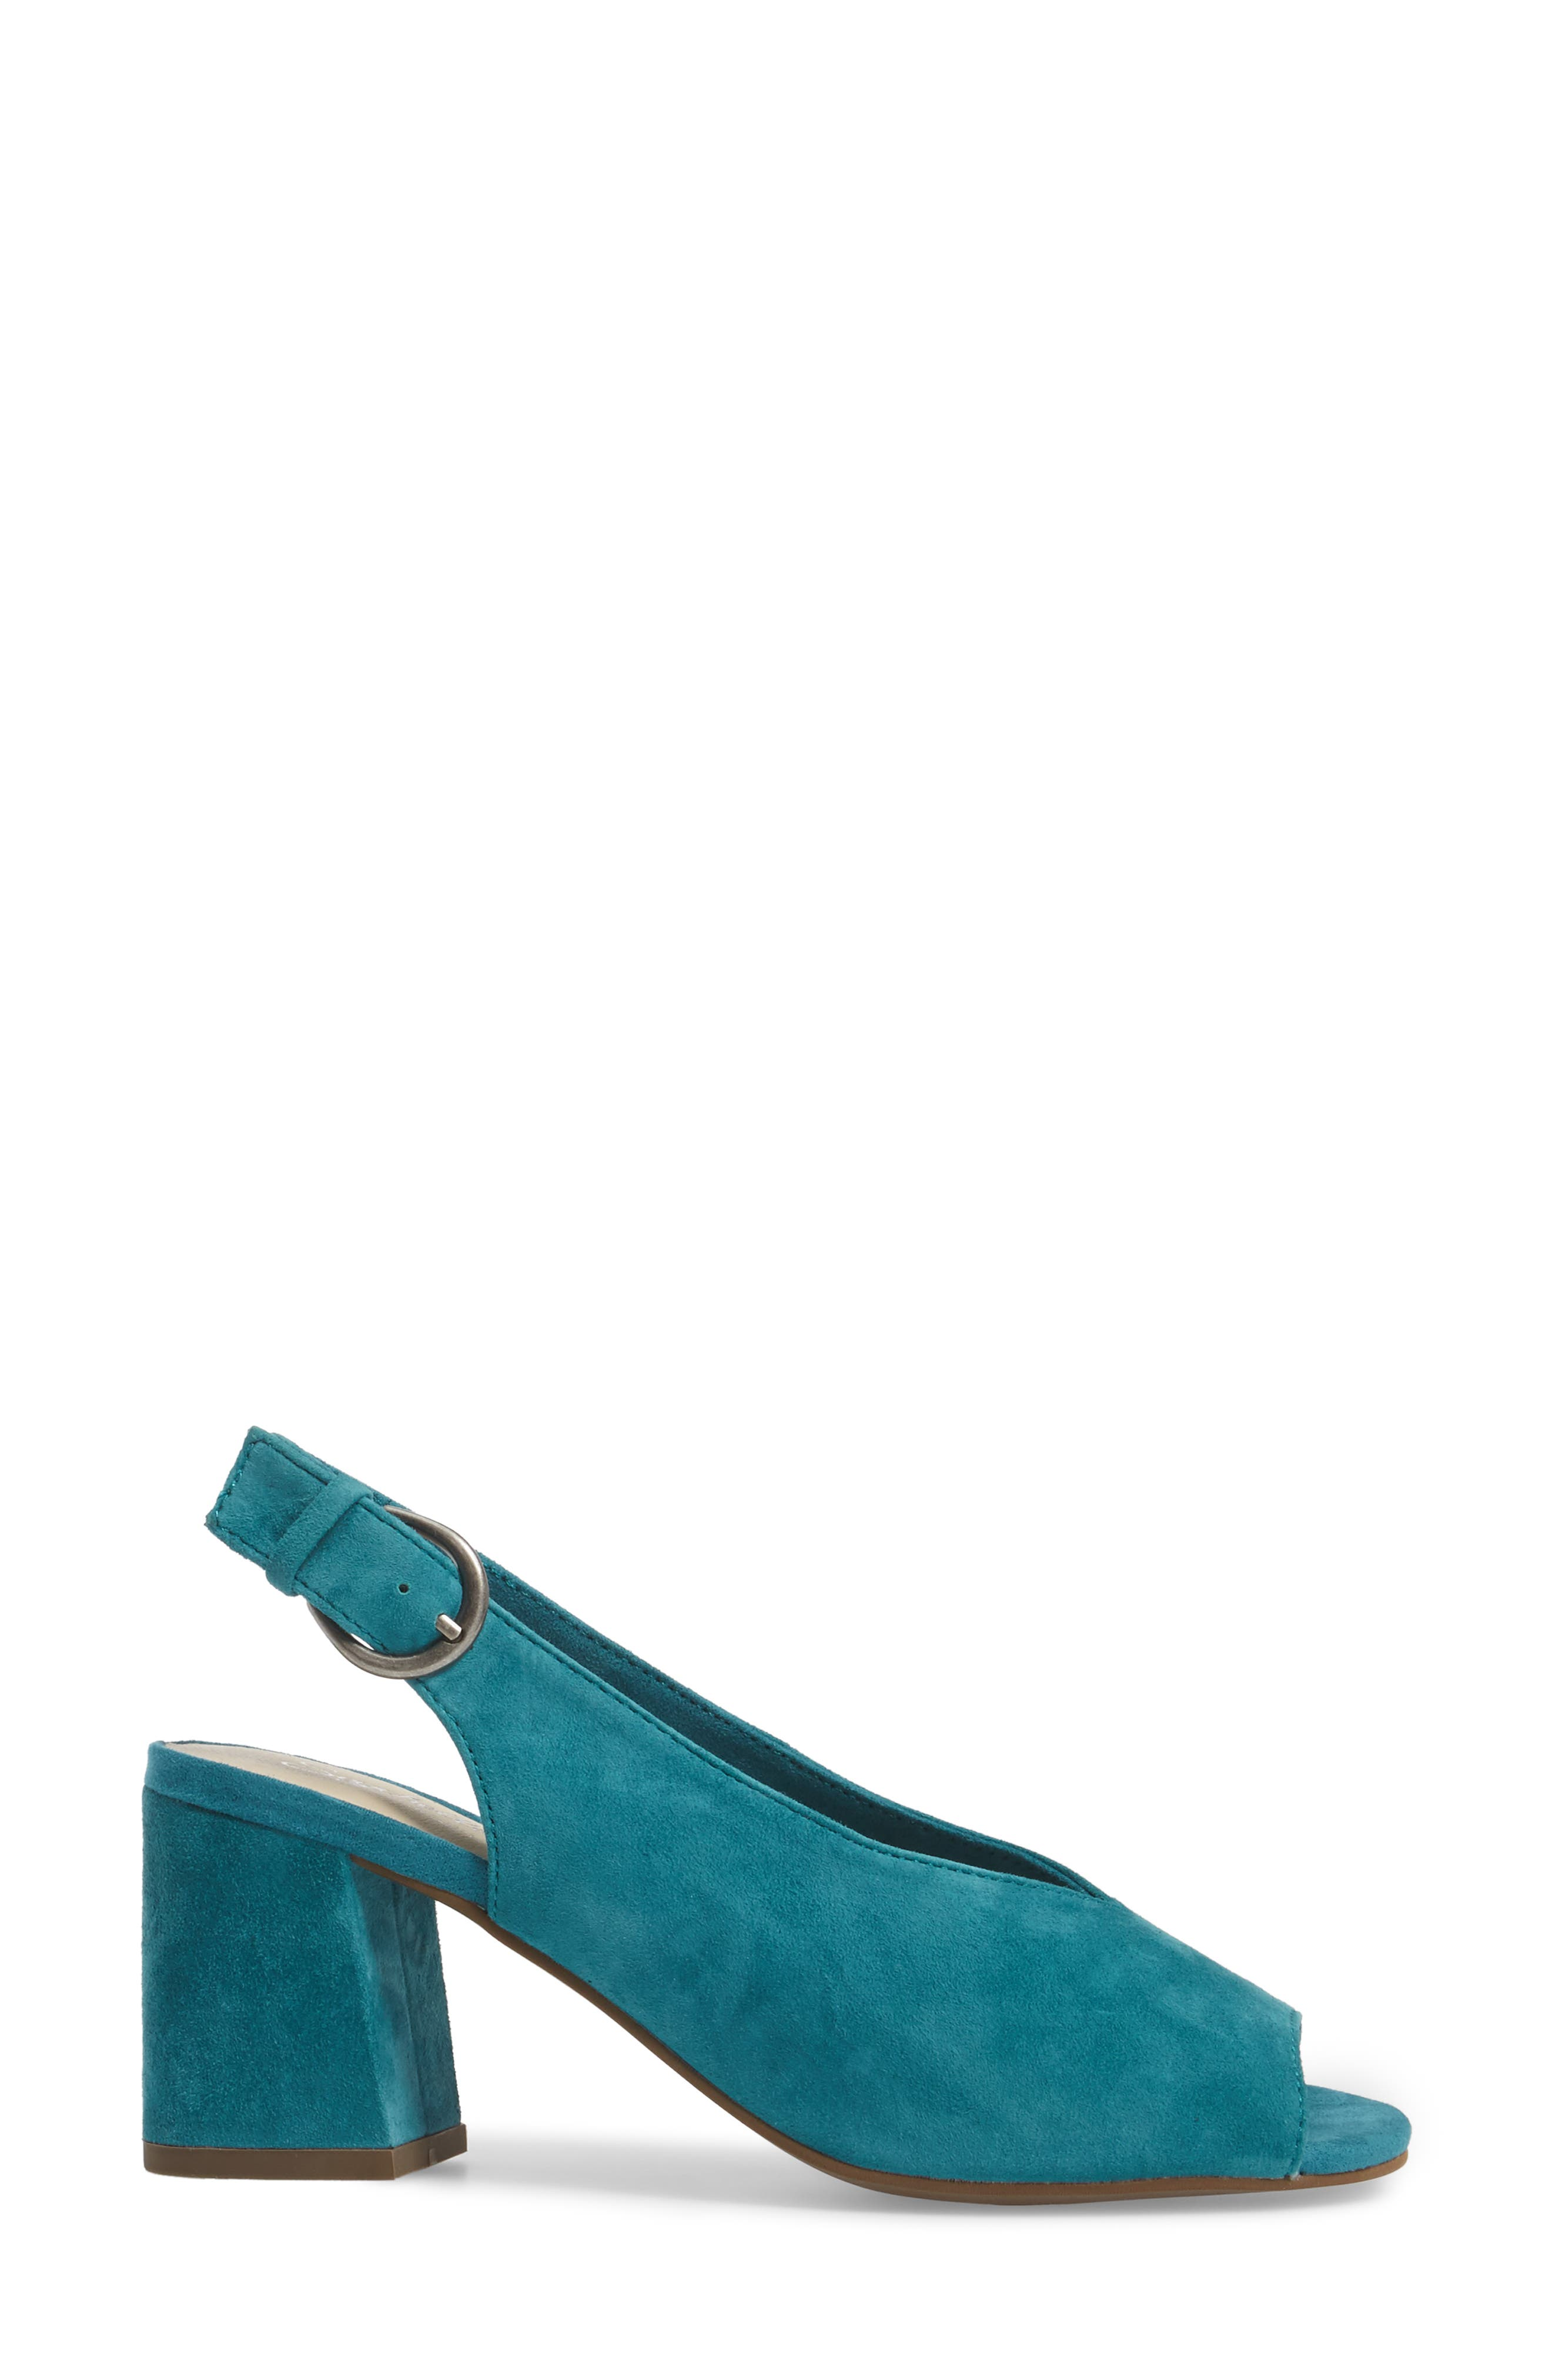 Playwright Slingback Sandal,                             Alternate thumbnail 3, color,                             TEAL SUEDE